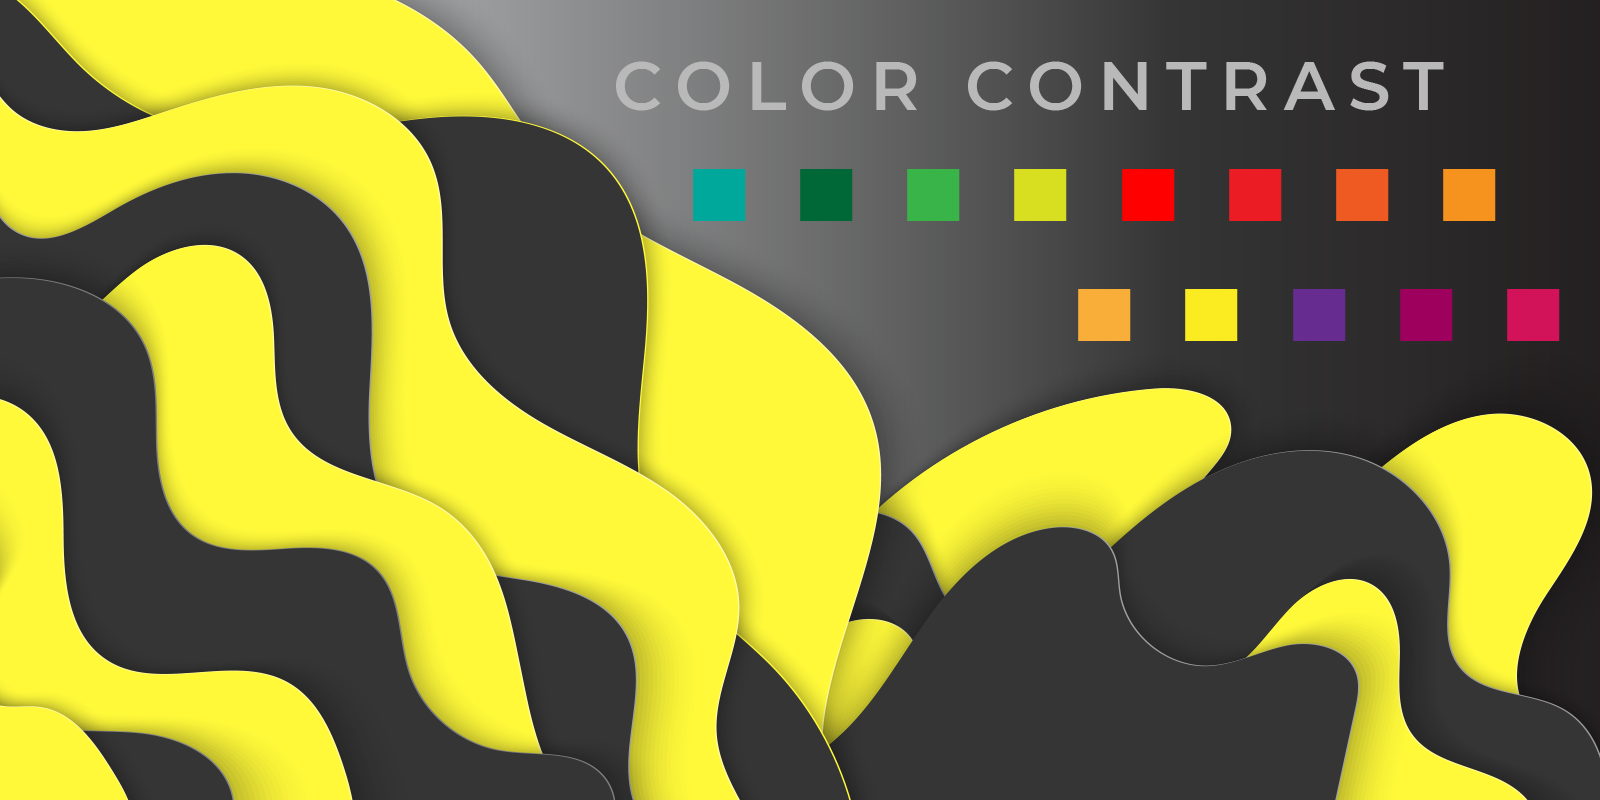 graphic showing color contrast between different colors